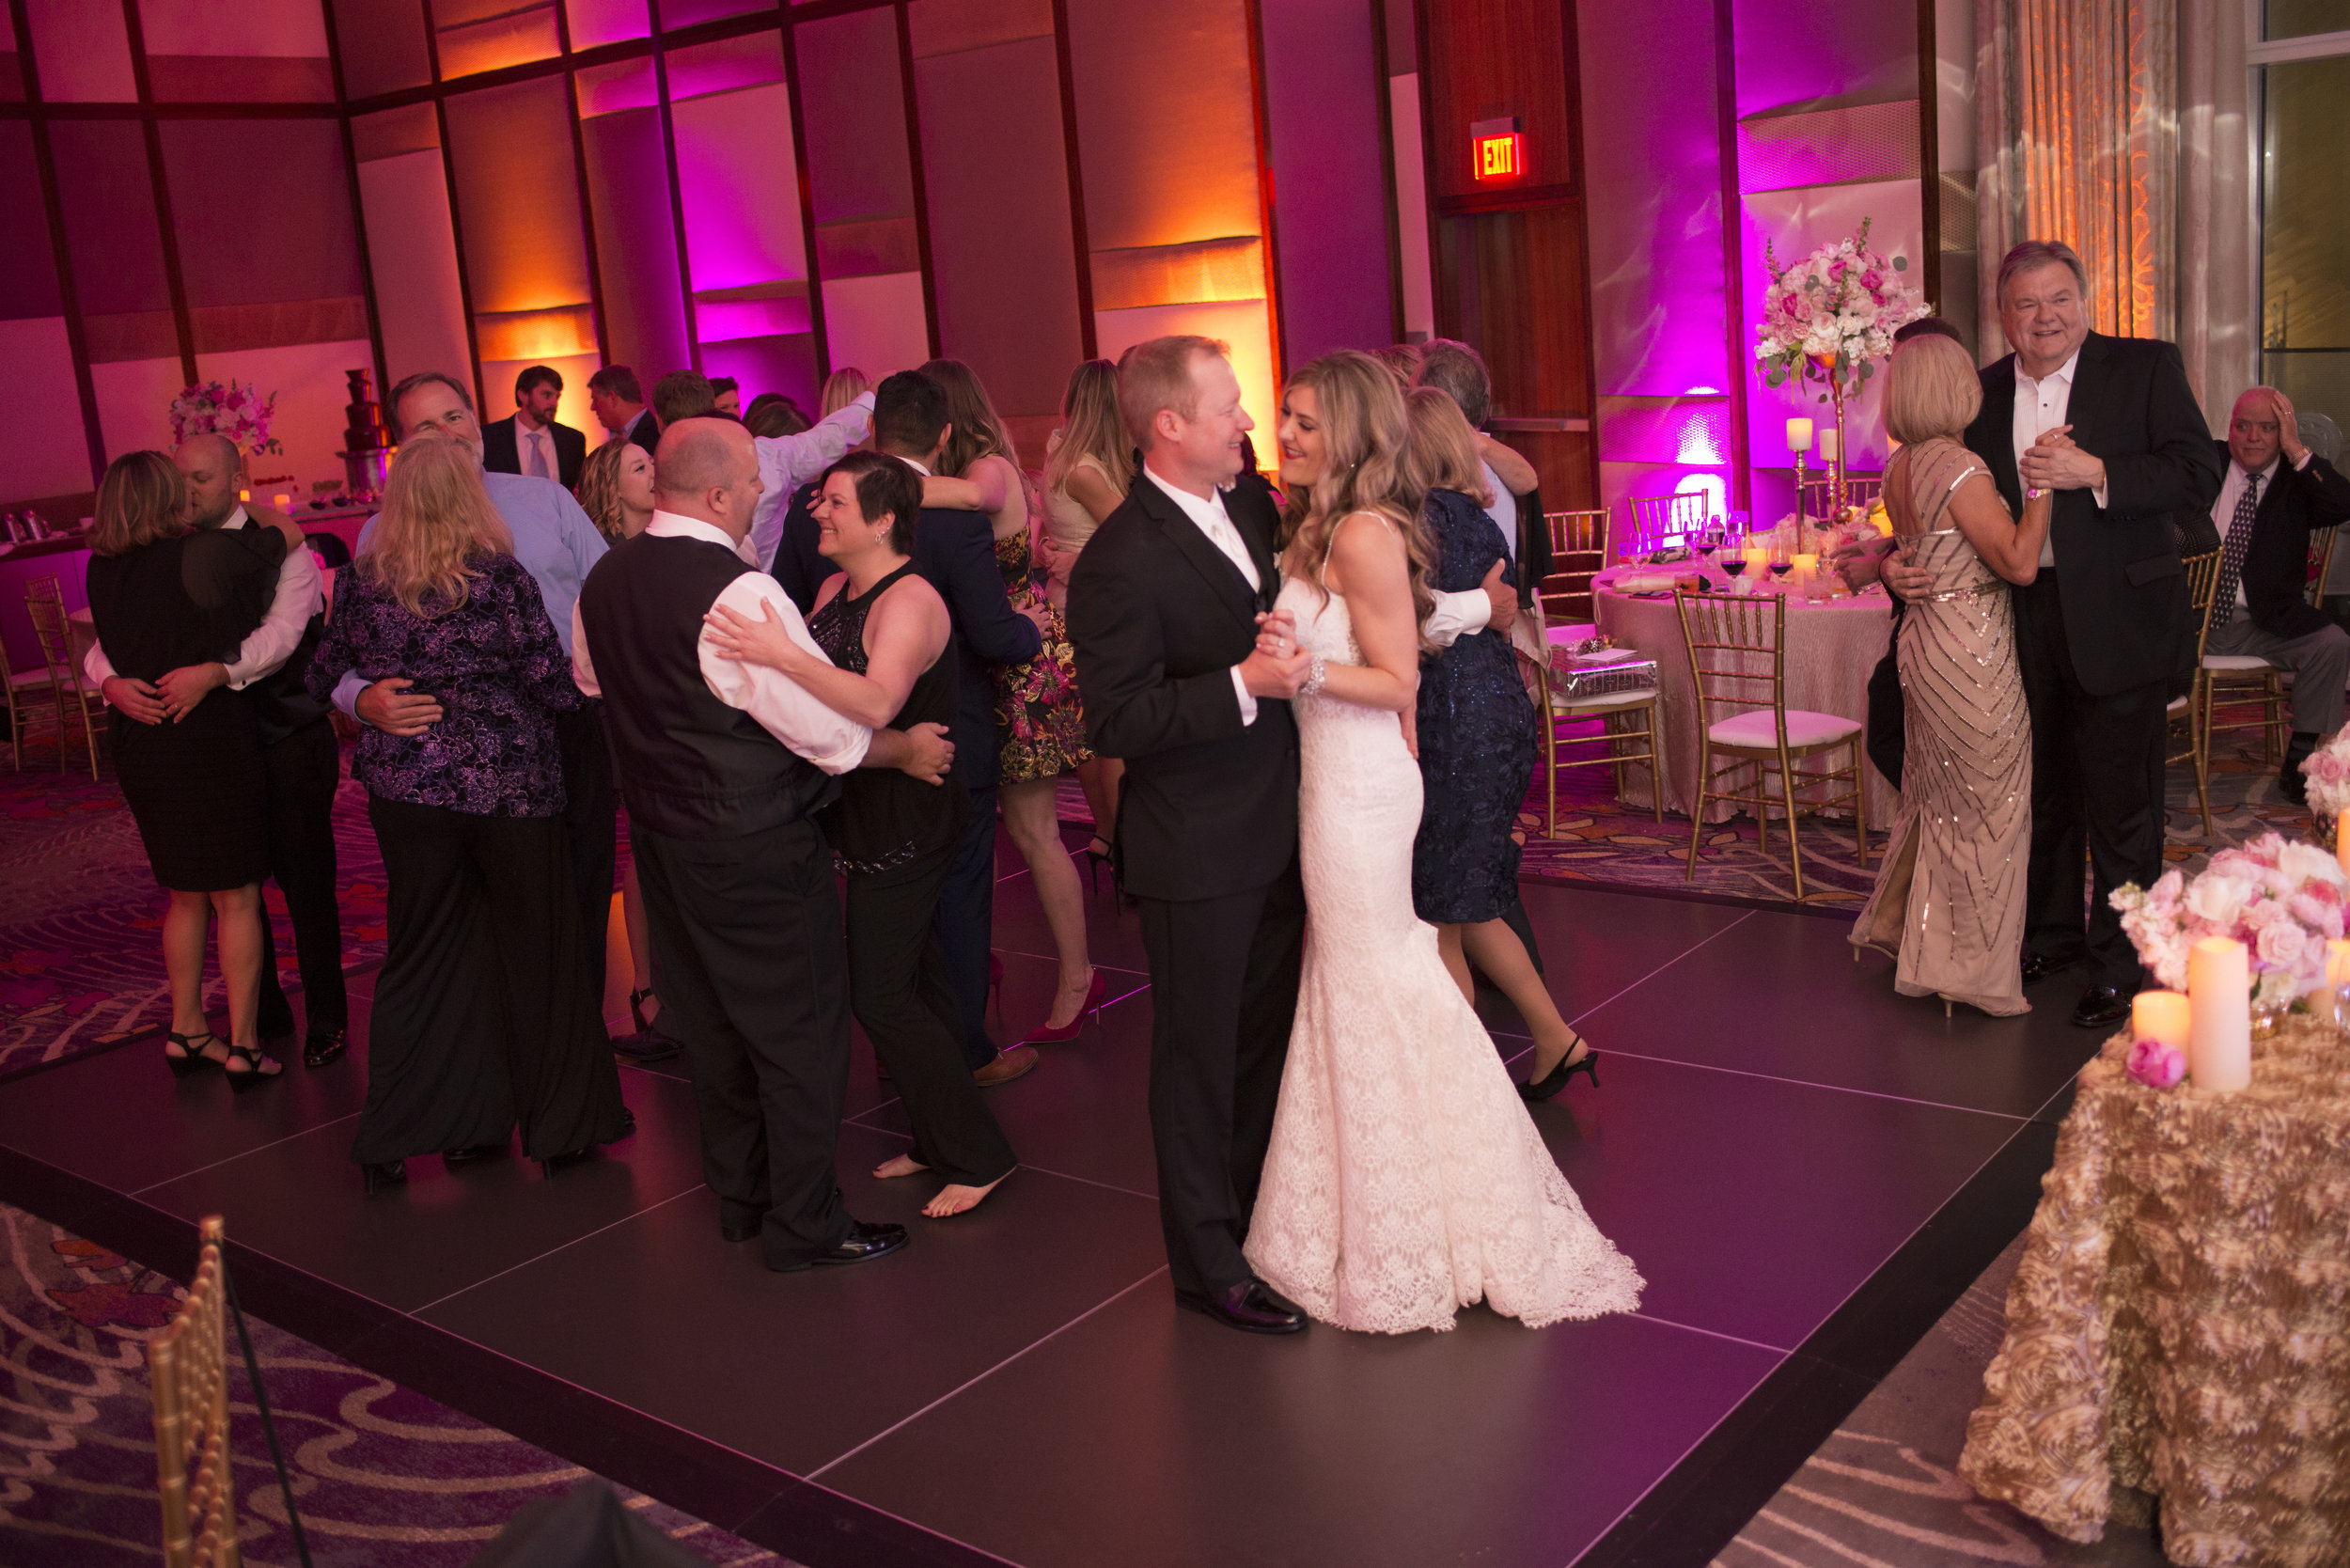 Dance party at wedding. Las V  egas   Wedding Planner Andrea Eppolito  .   Image by AltF.